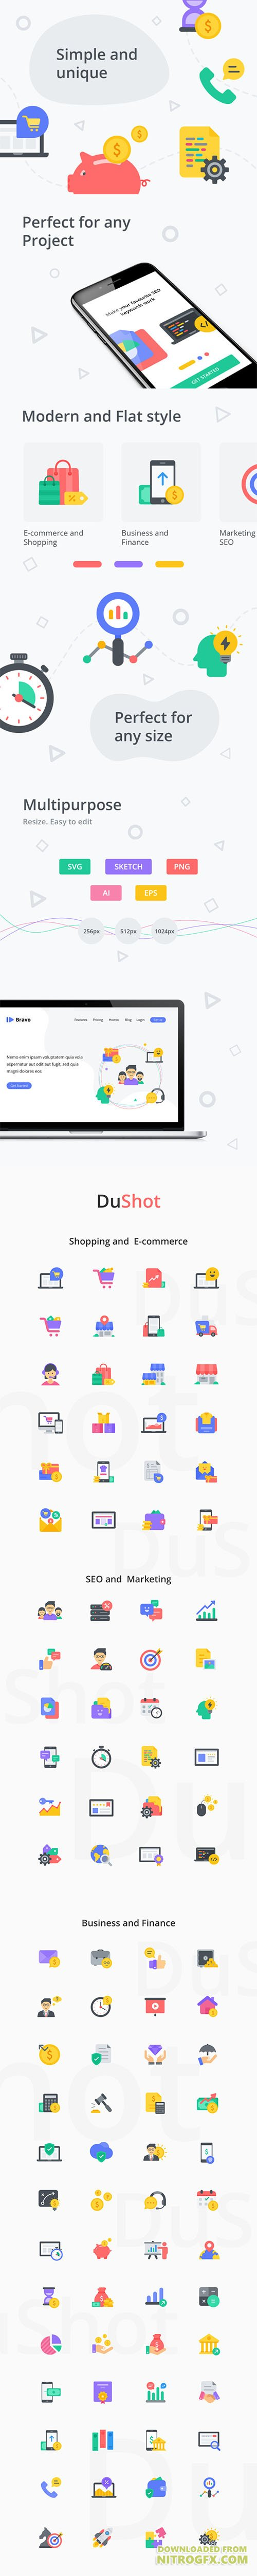 DuShot - Premium set of 100 money related flat styled illustrations